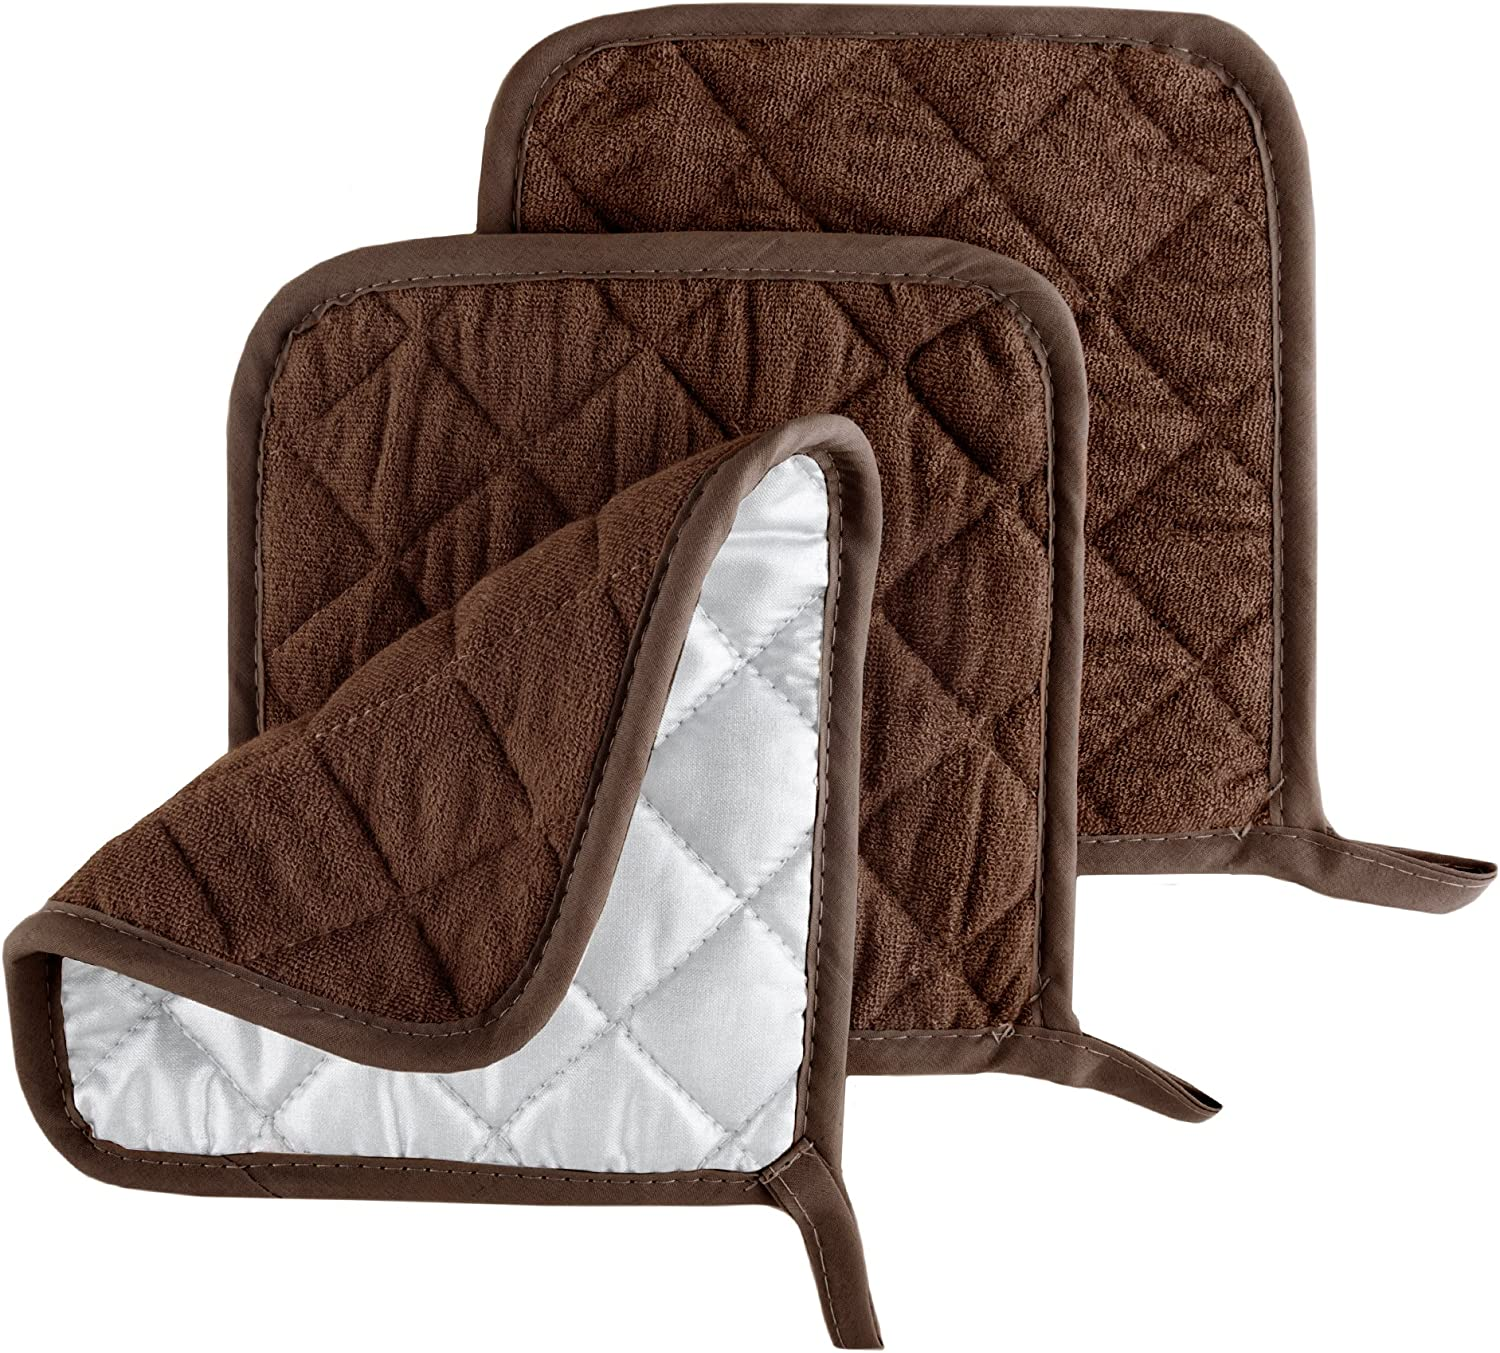 Pot Holder Set, 3 Piece Set Of Heat Resistant Quilted Cotton Pot Holders By Lavish Home (Chocolate)